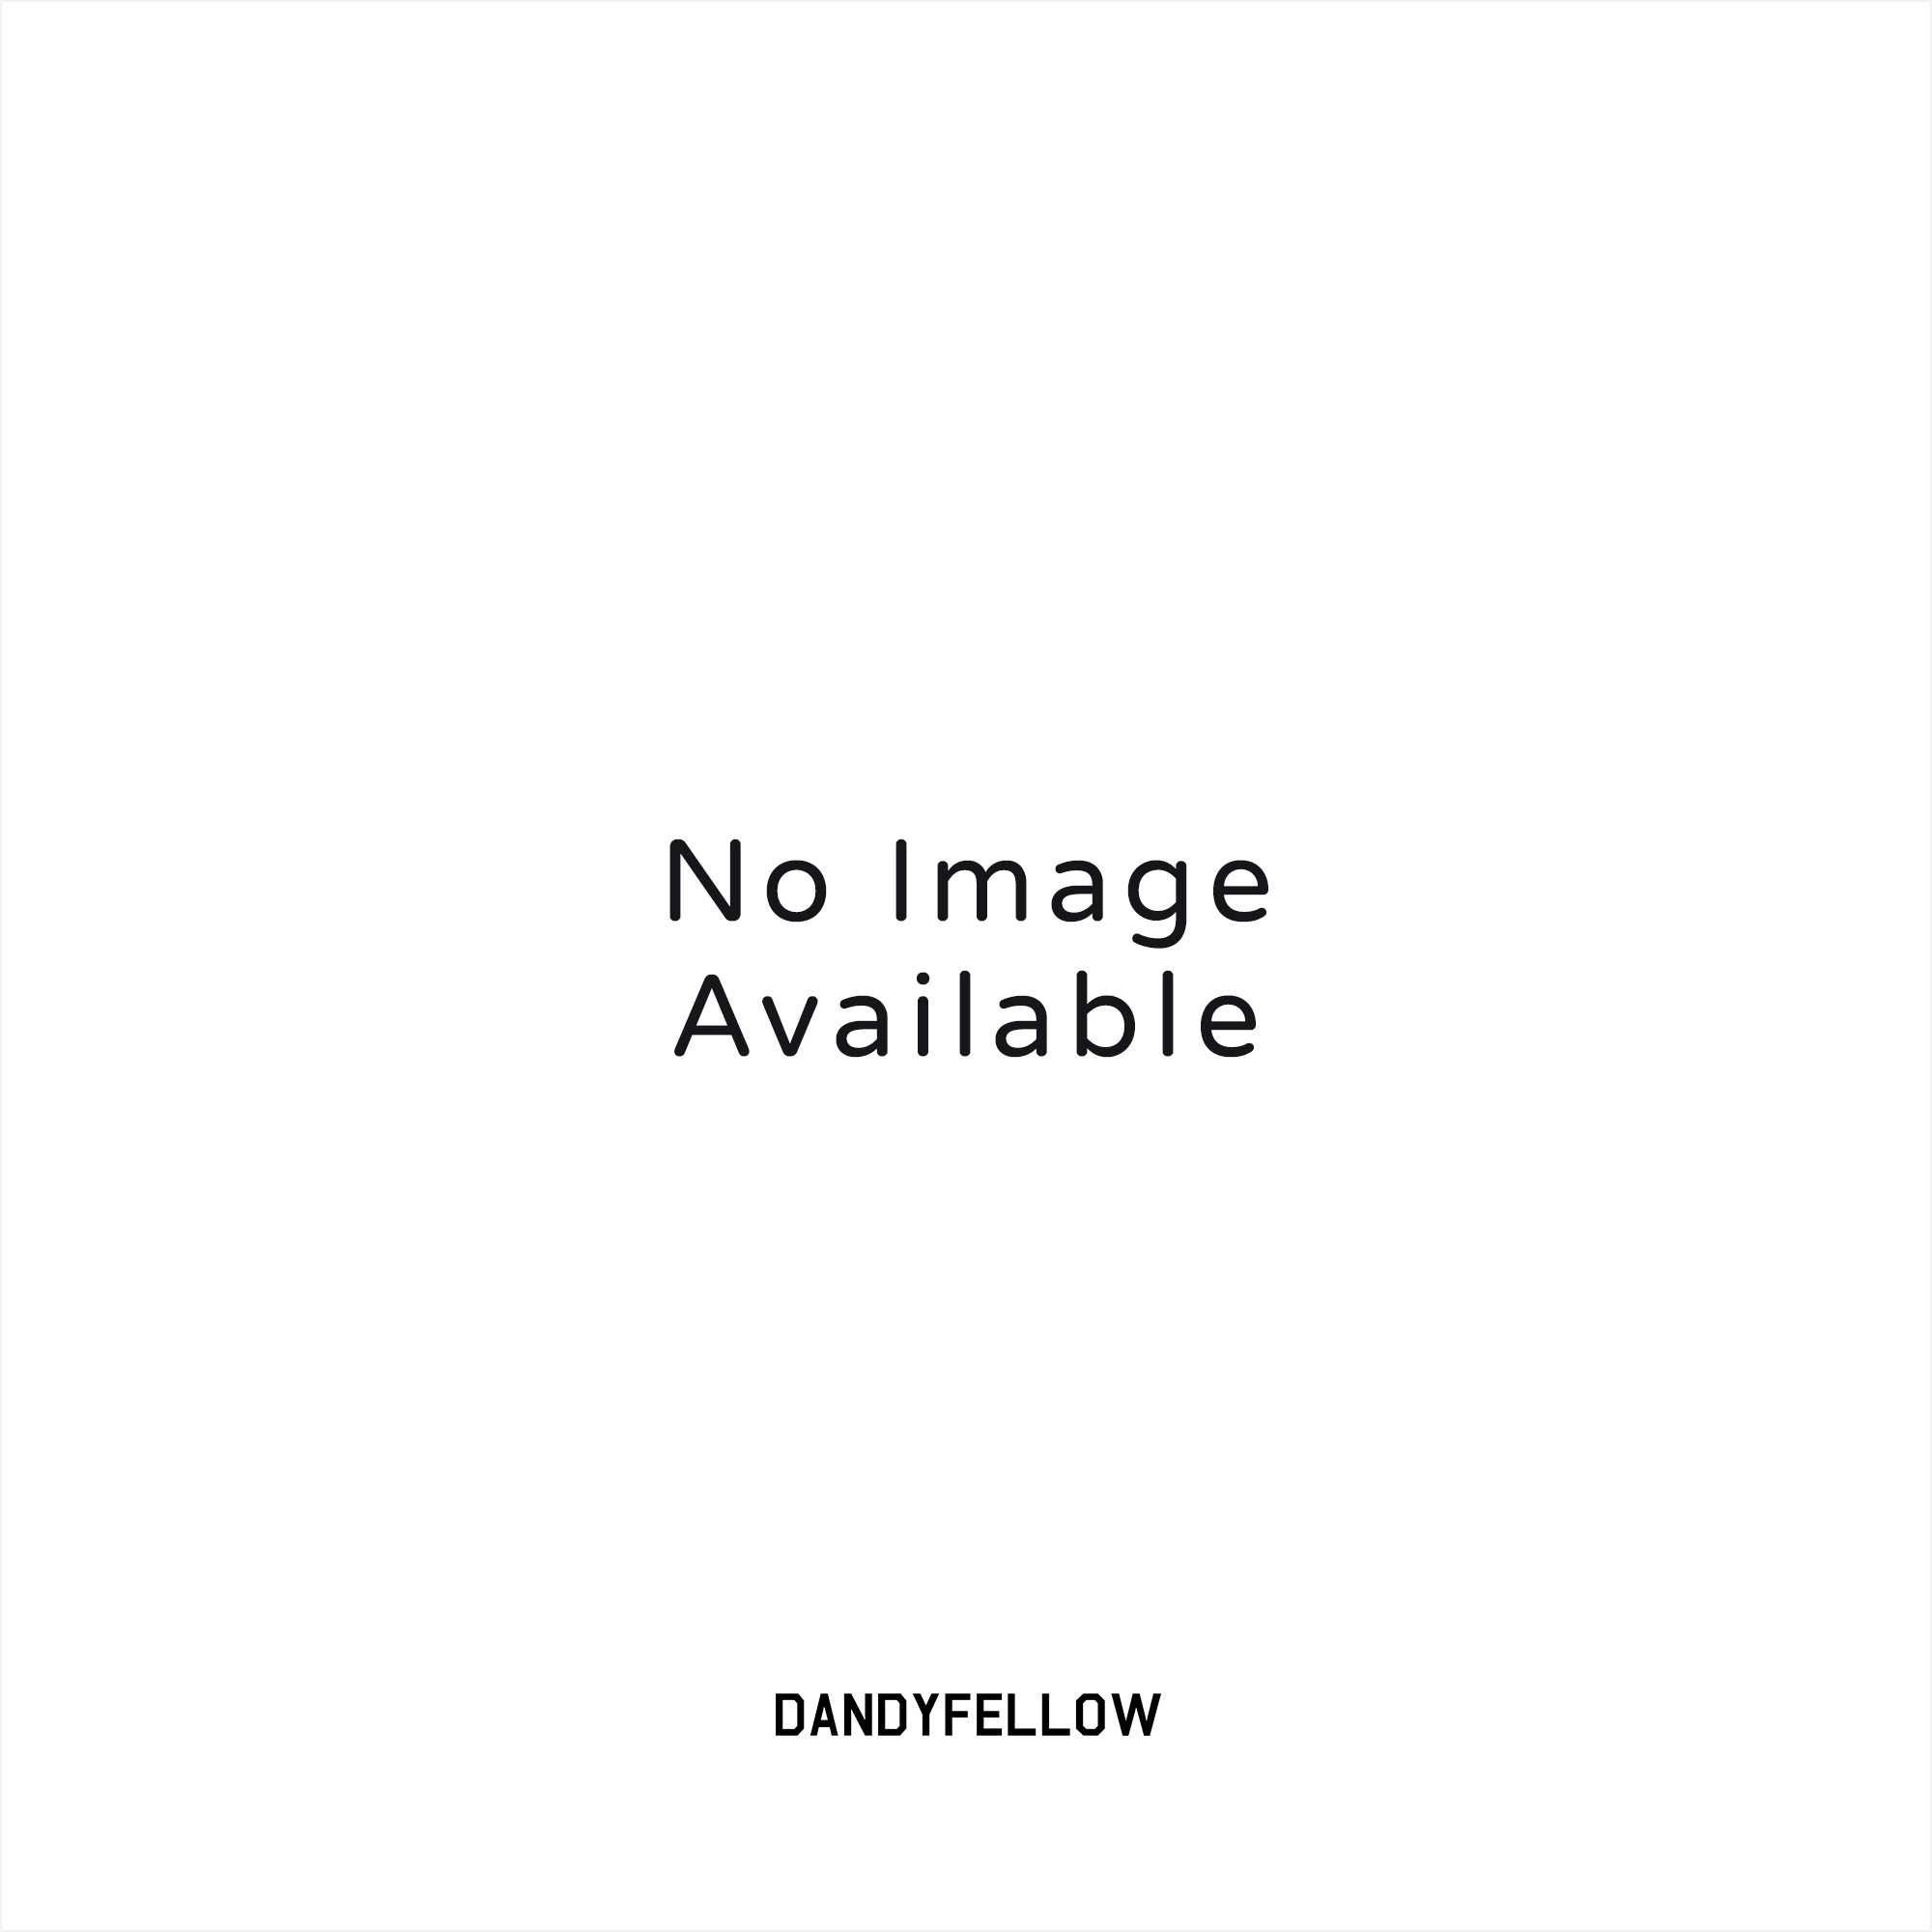 36d1657e0a3 Adidas Originals Haven (FTWR White) at Dandy Fellow